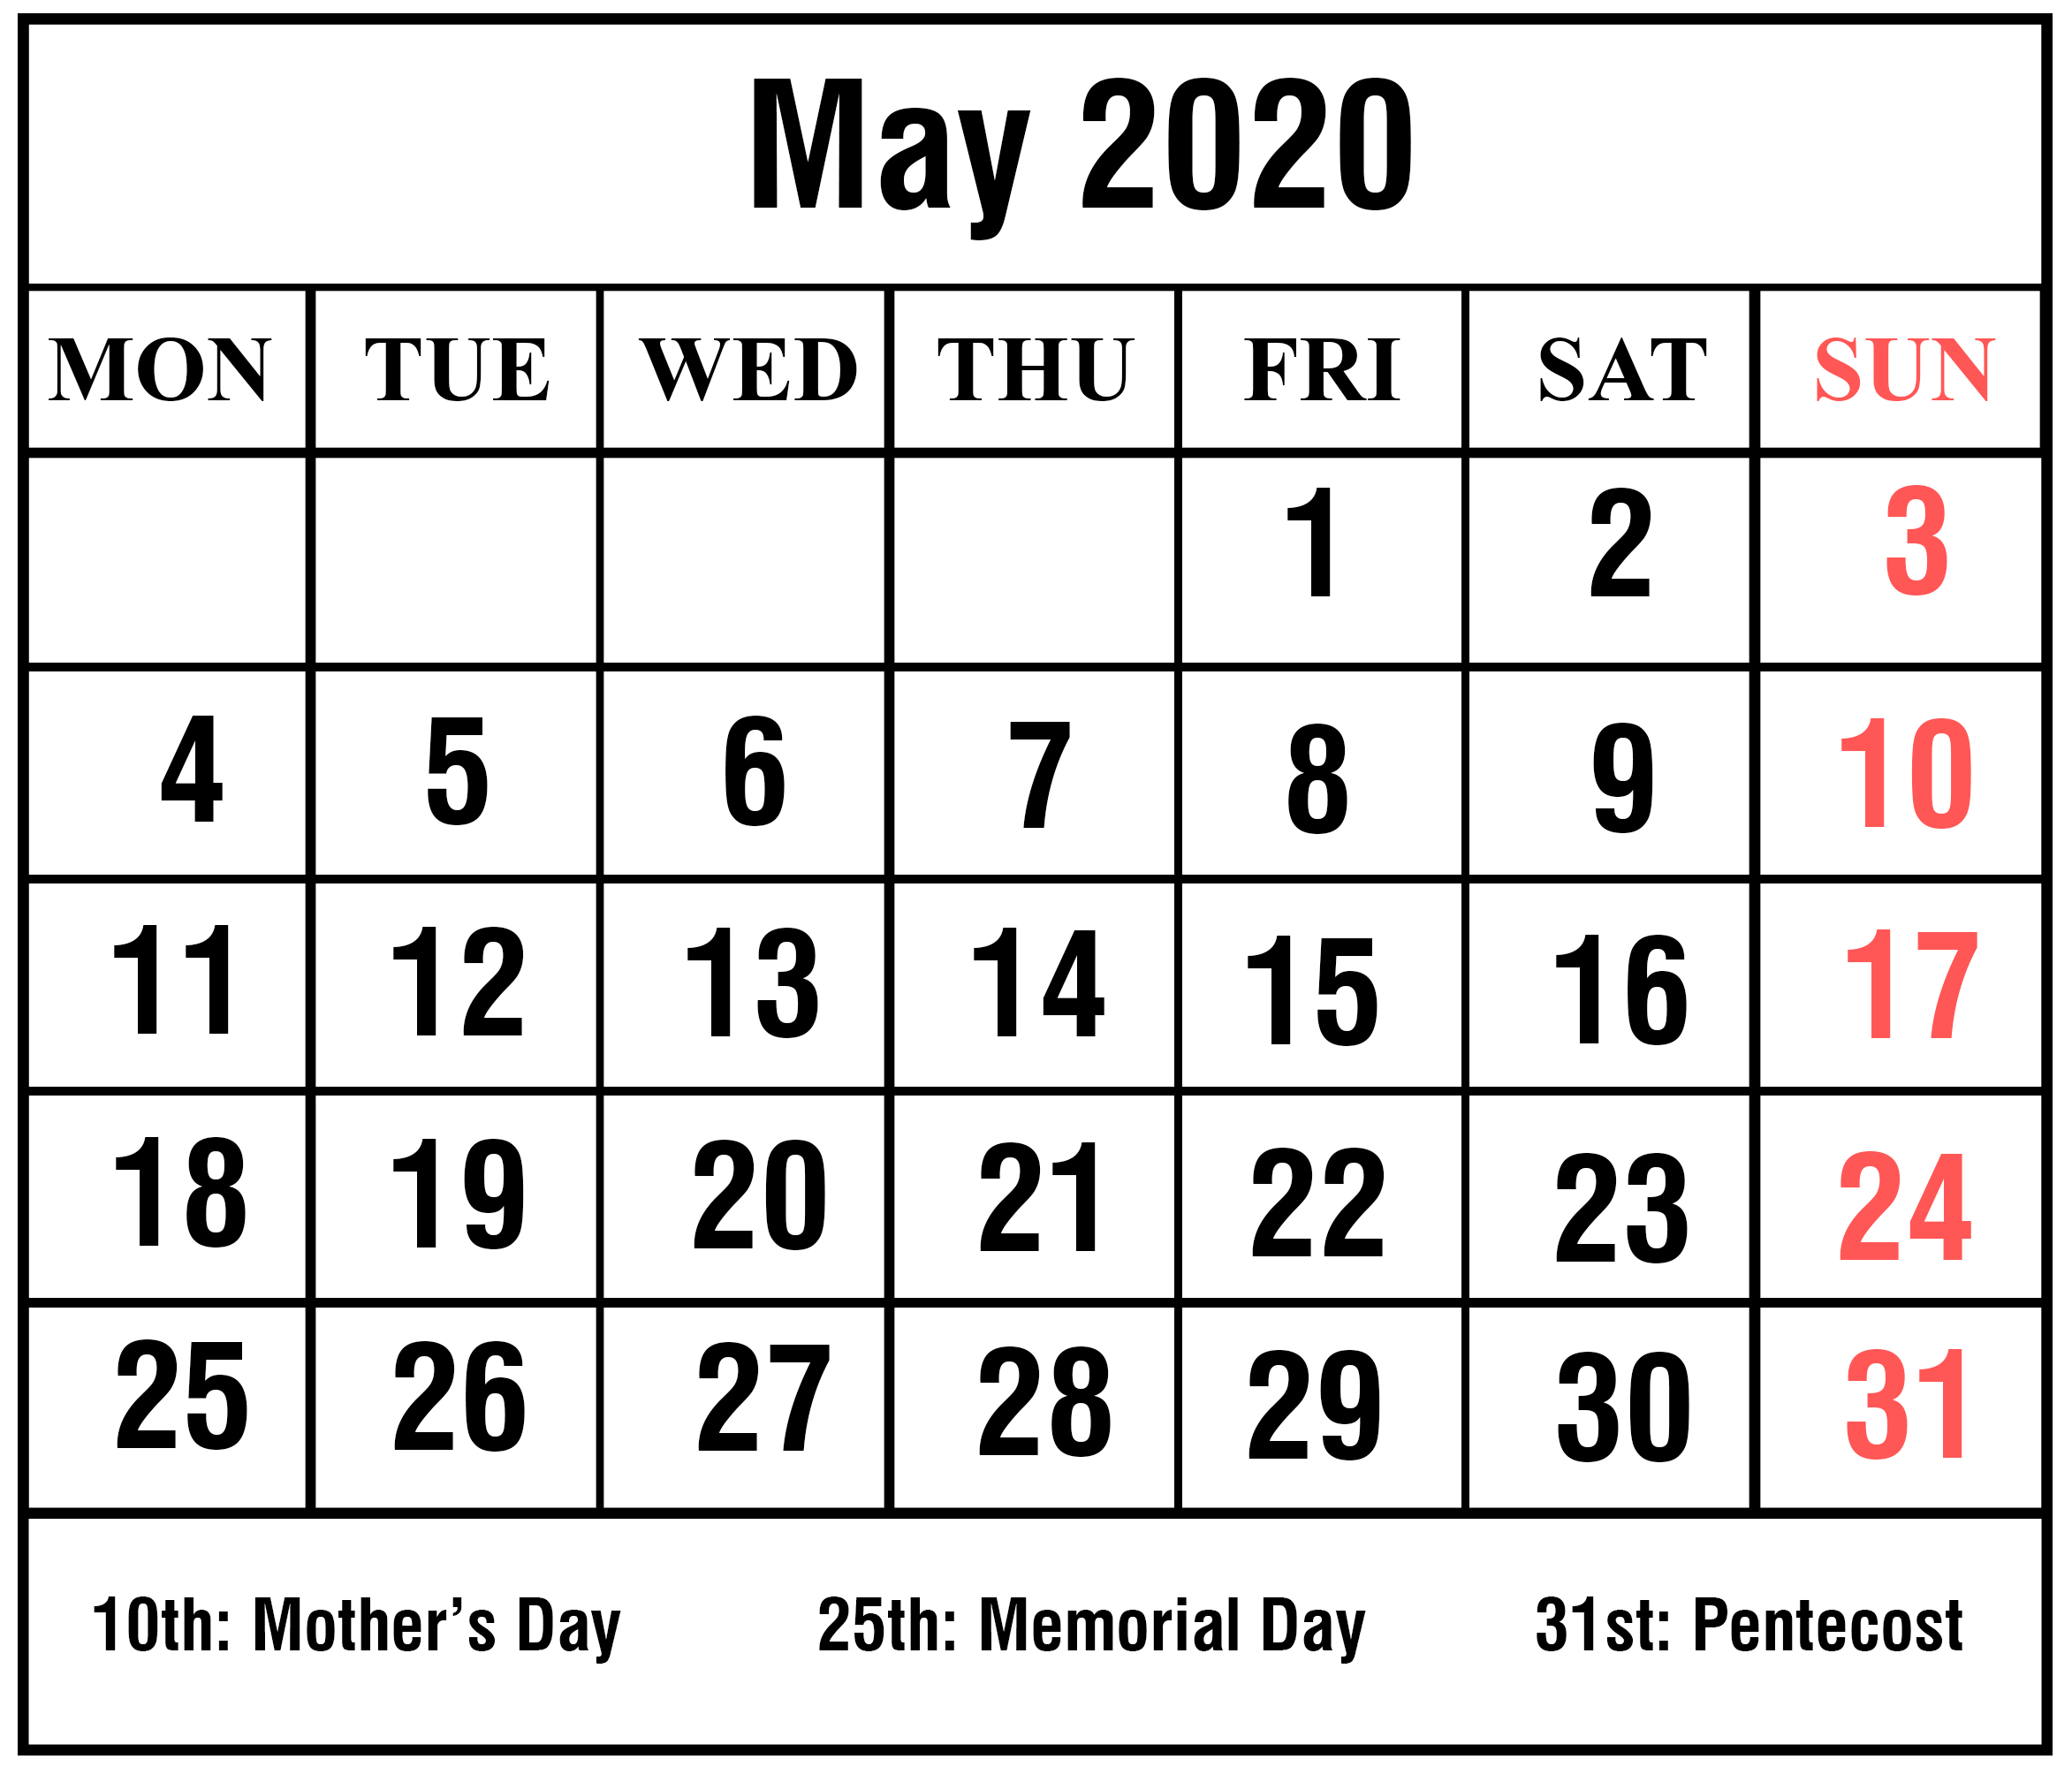 Download Free Blank May 2020 Printable Calendar [Pdf, Excel & Word intended for Print Free 2020 Calendars Without Downloading